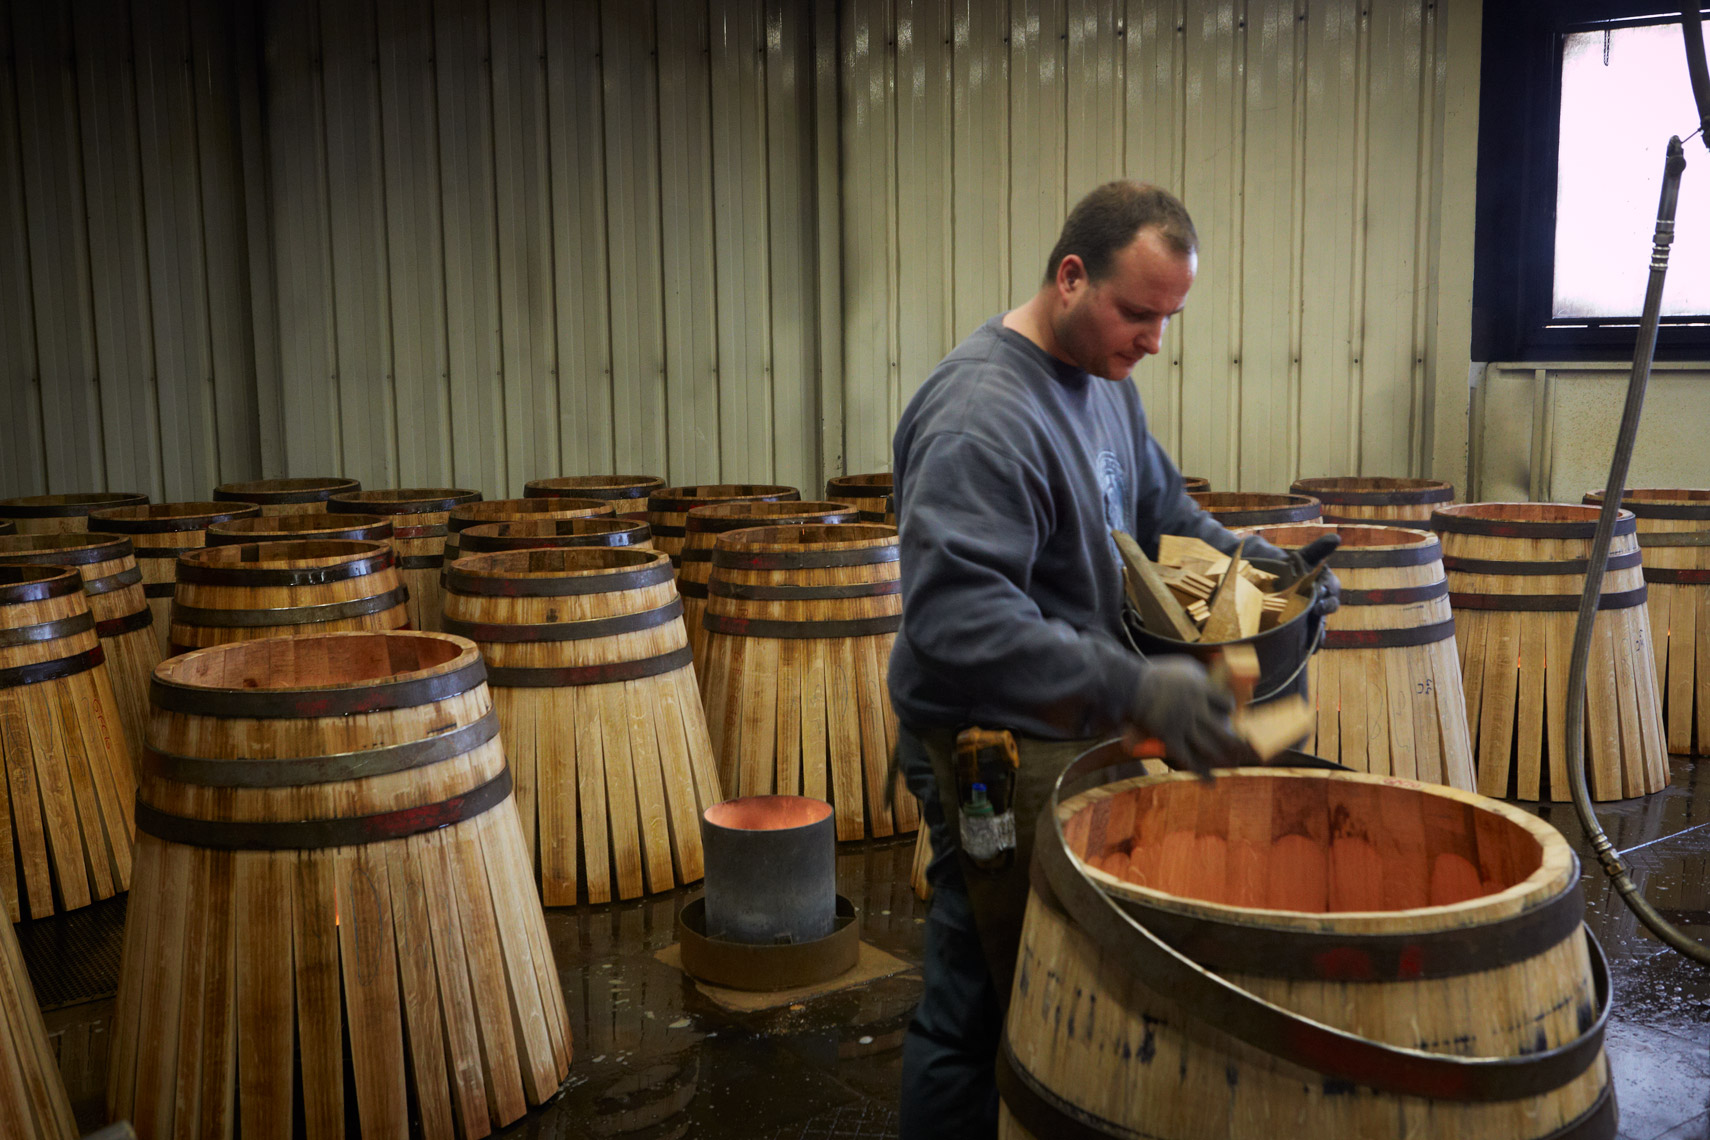 AlanCampbellPhotography, coopers toasting barrels